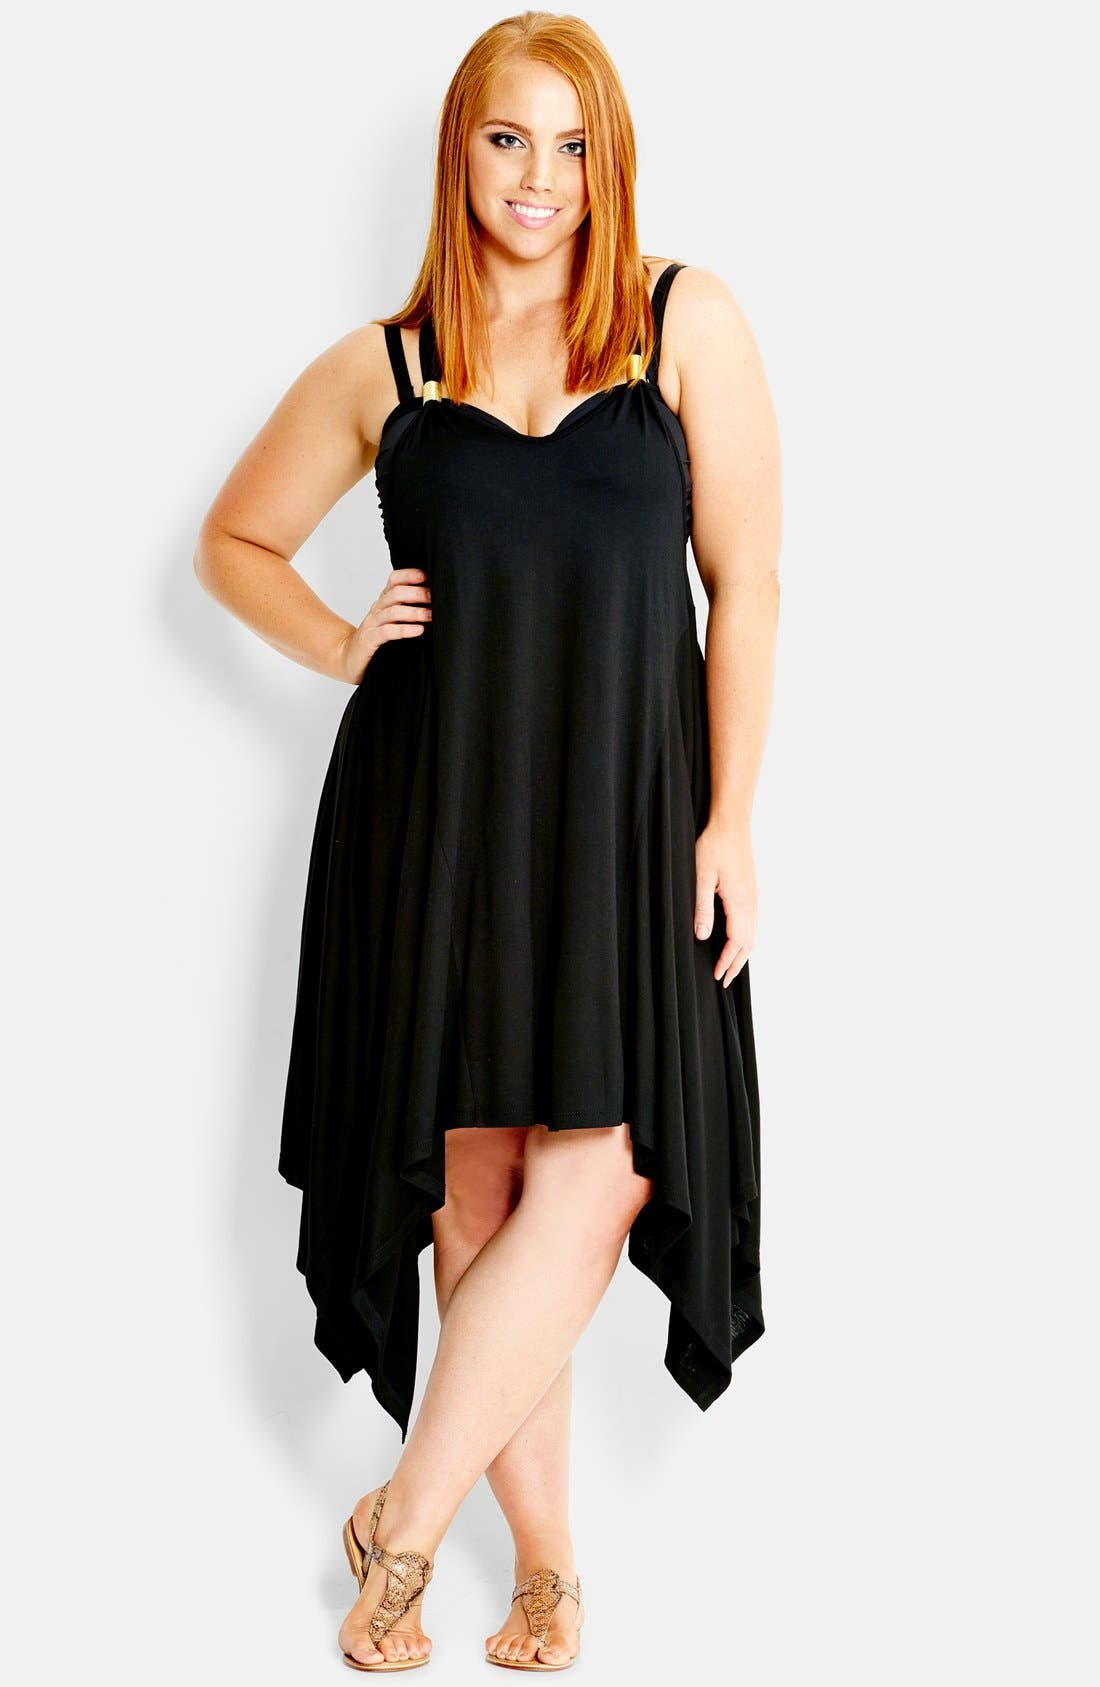 Main Image - City Chic 'Monaco' High/Low Stretch Knit Cover-Up Dress (Plus Size)